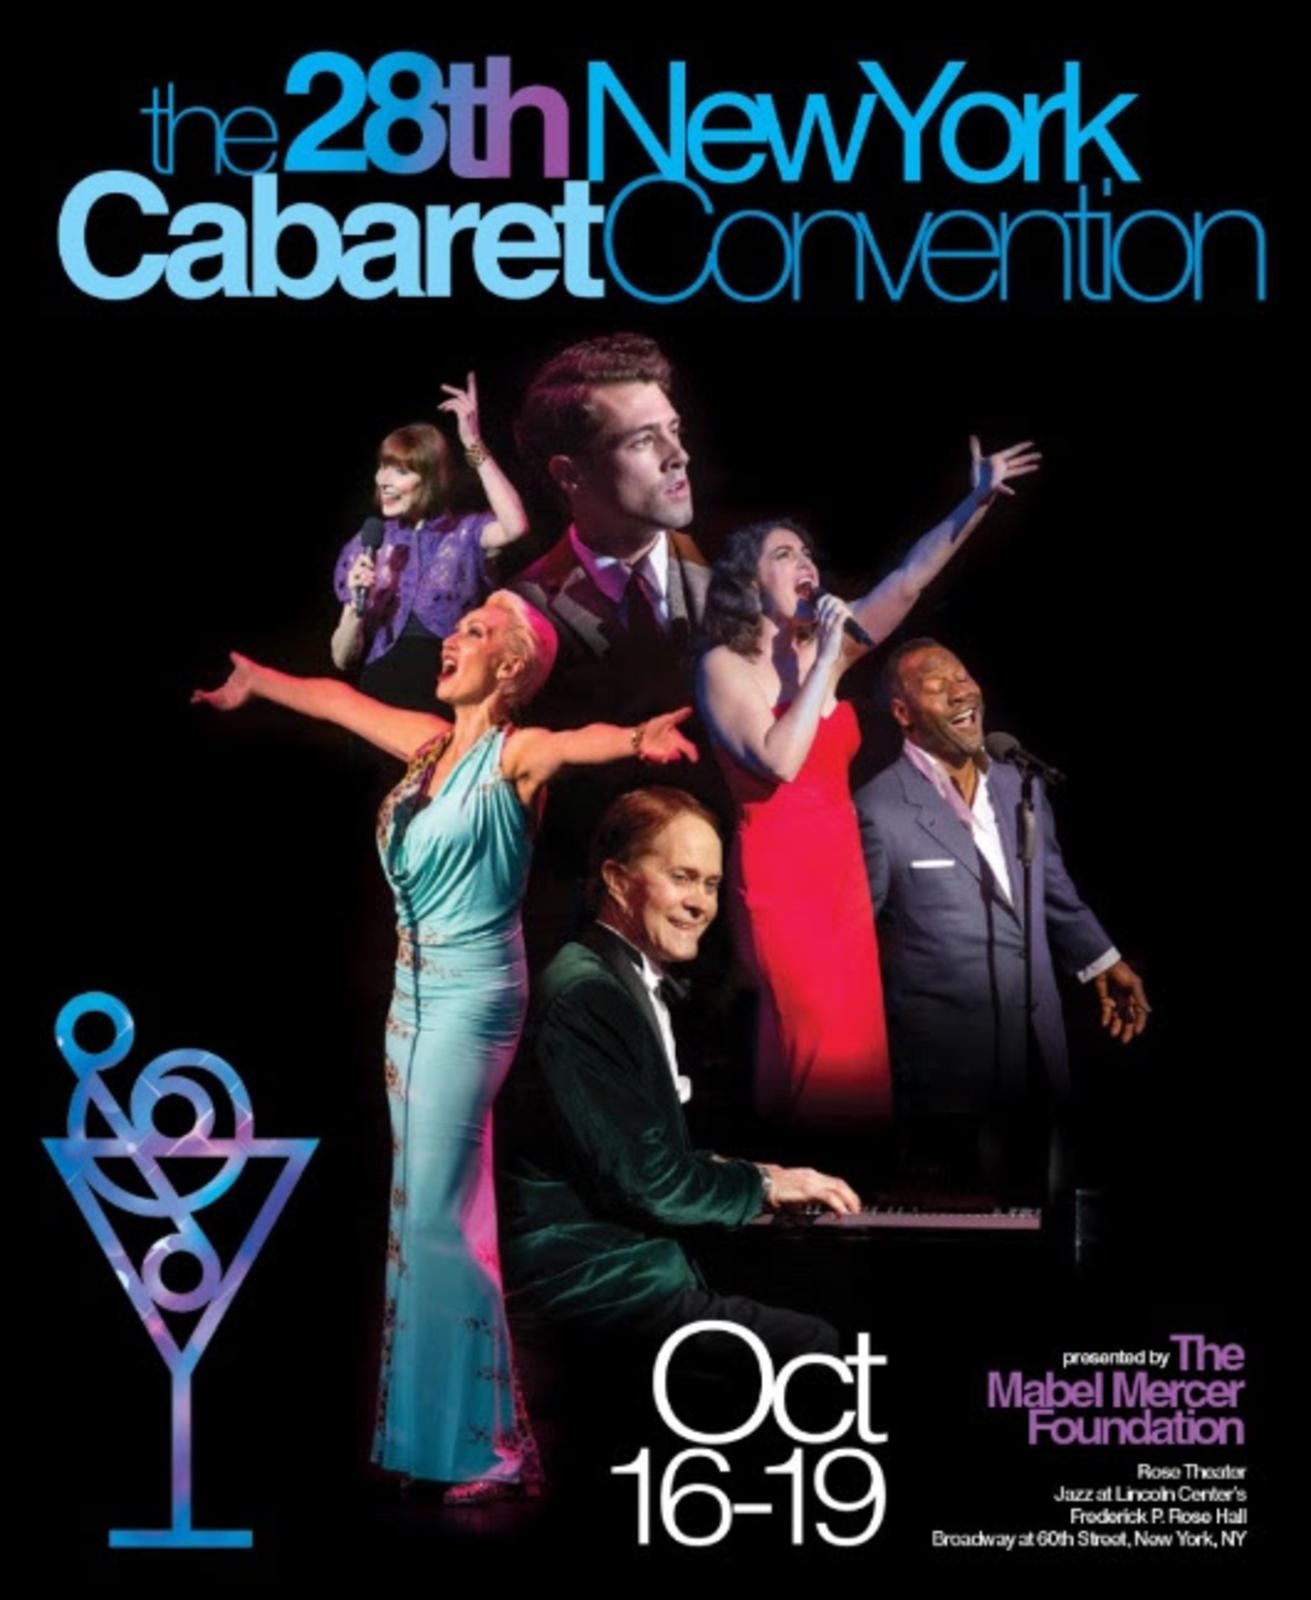 The 28th Annual New York Cabaret Convention